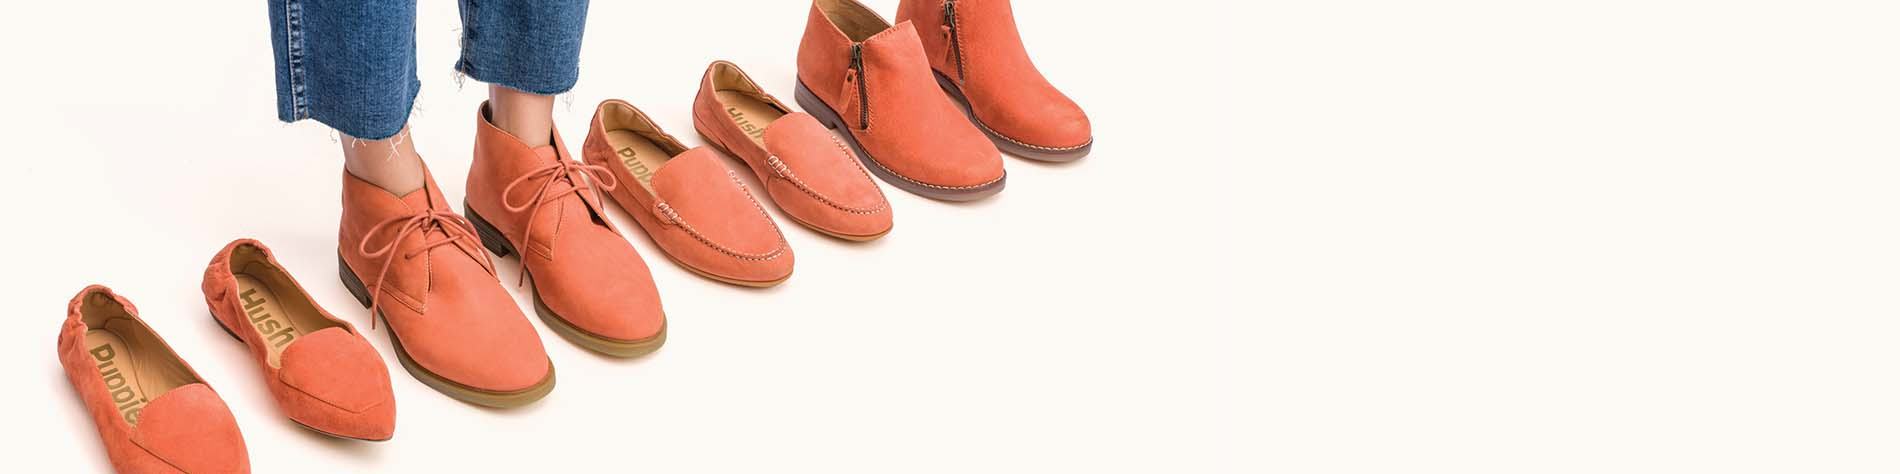 A pair of feet in a pair of ginger shoes, in line with a selction of other ginger shoes.